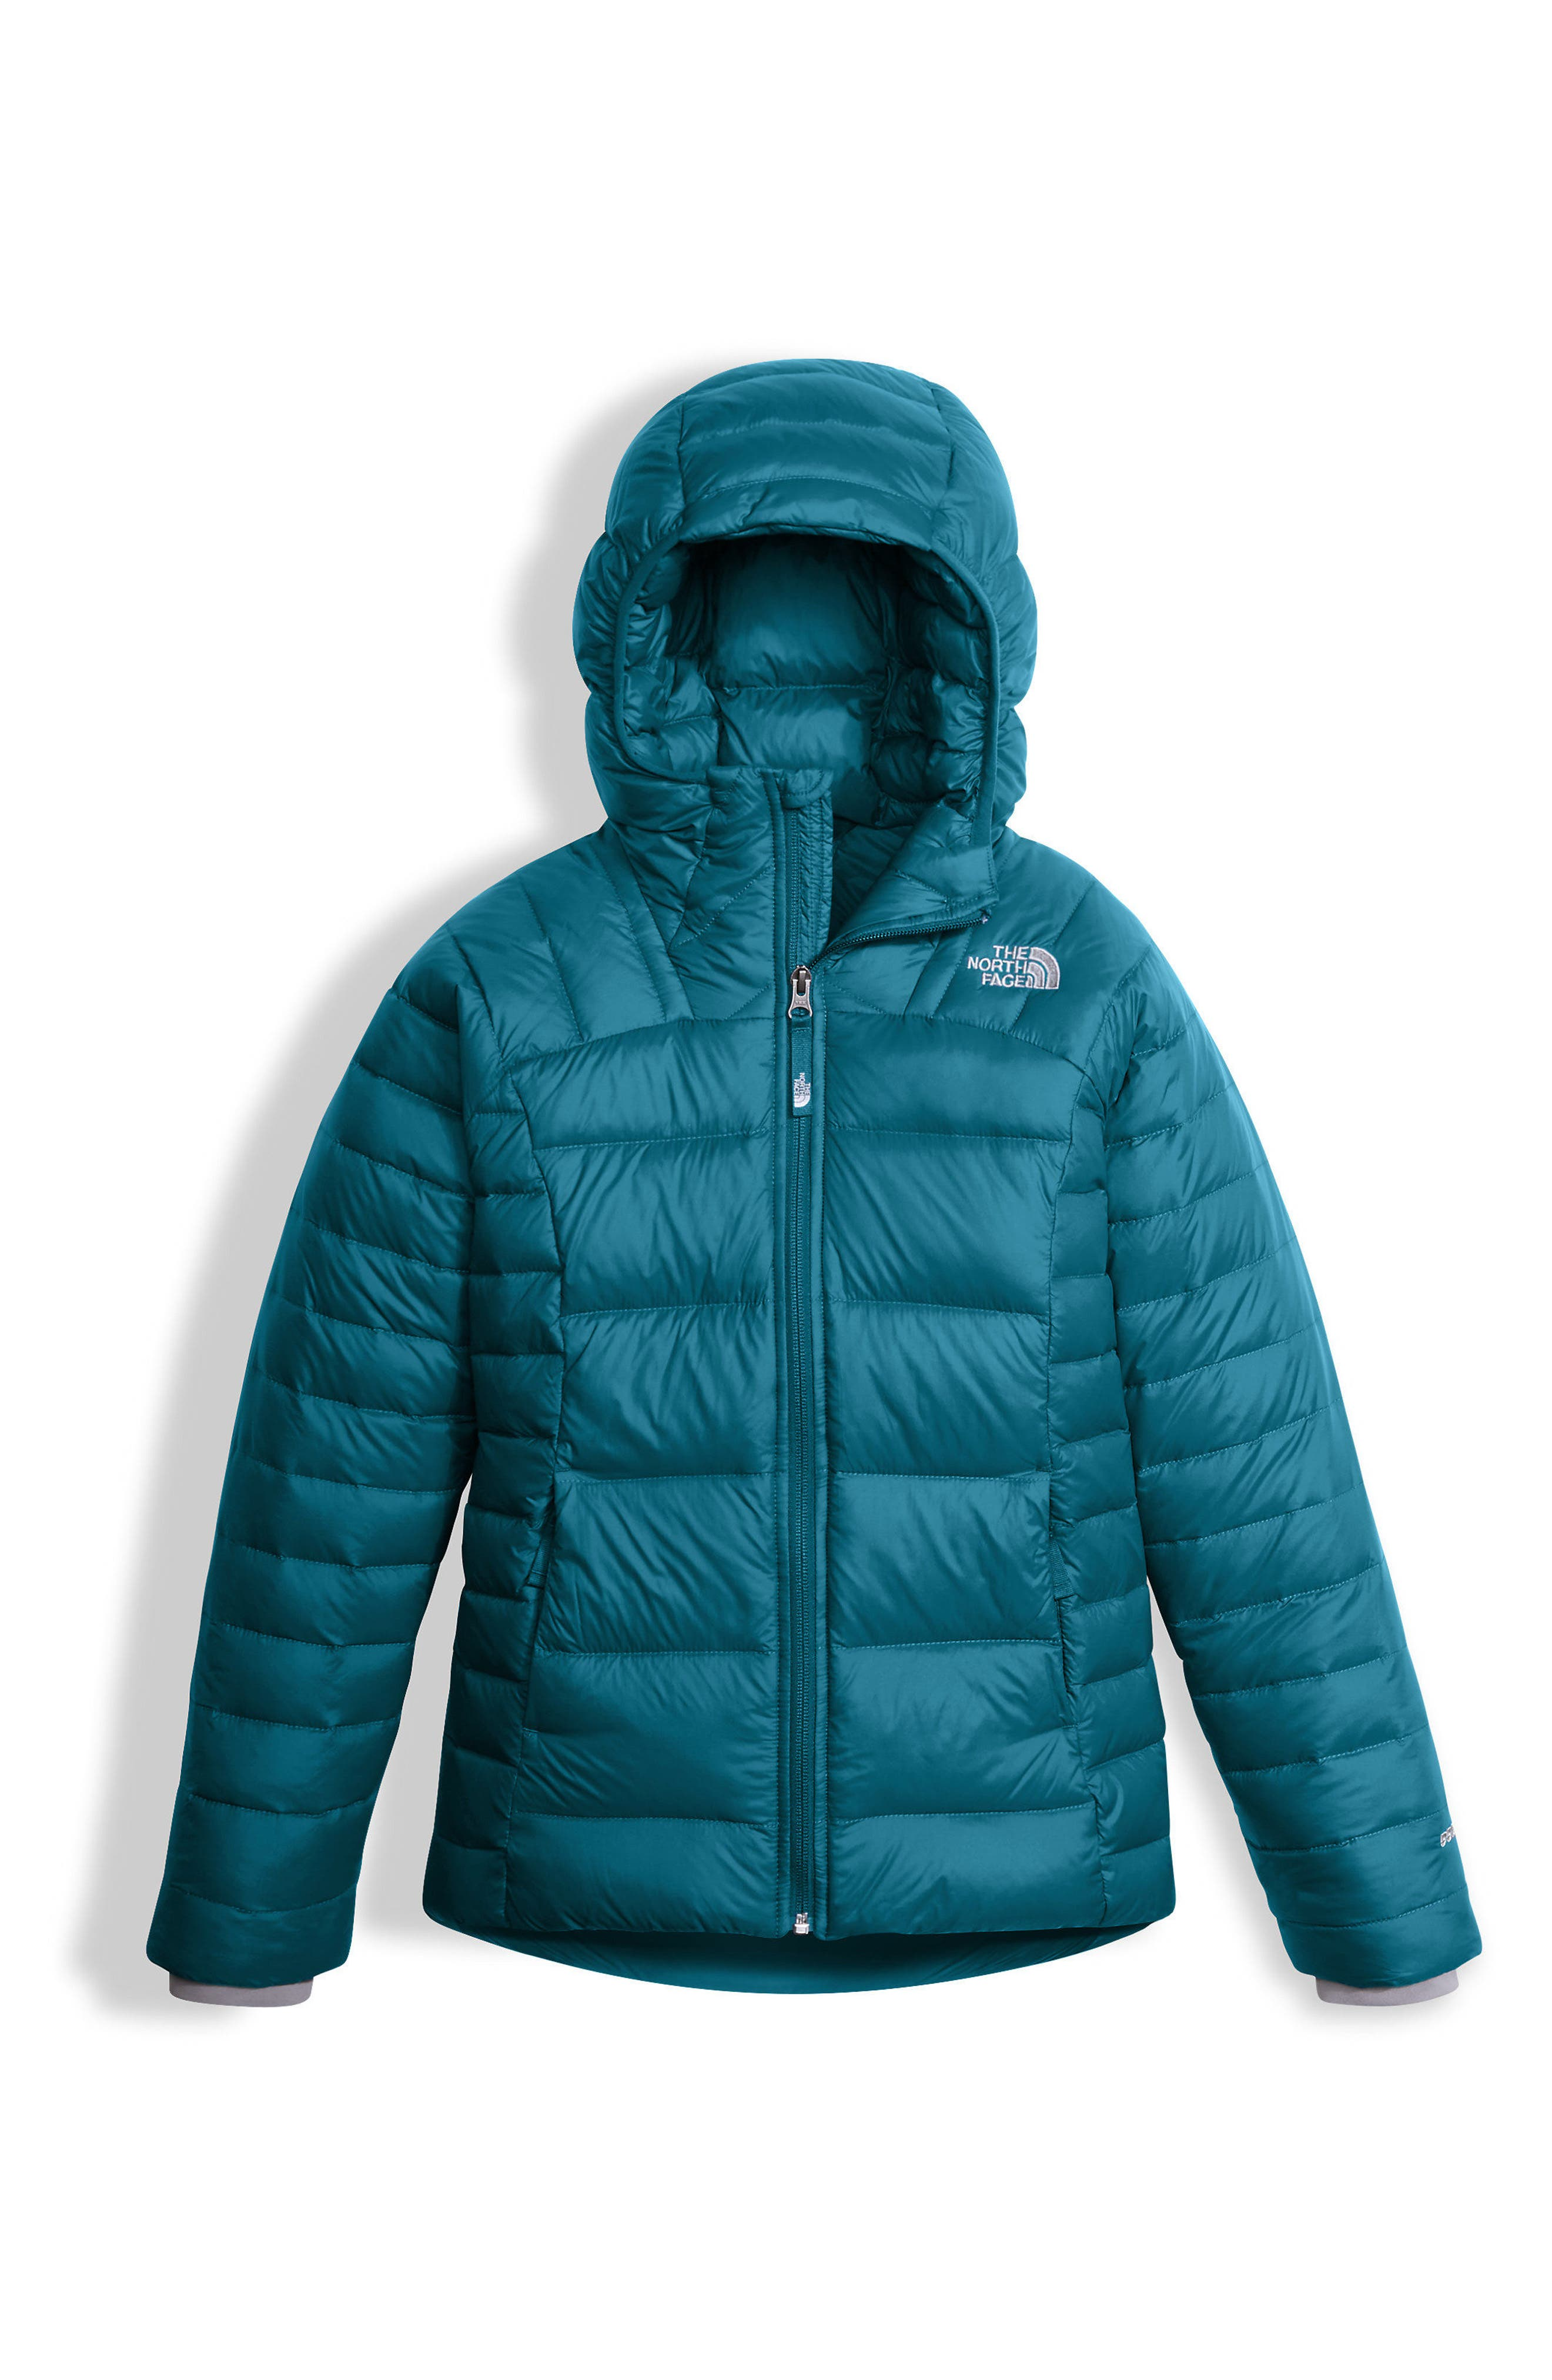 Main Image - The North Face Double Down Water Resistant 550-Fill Power Down Insulated Jacket (Little Girls & Big Girls)